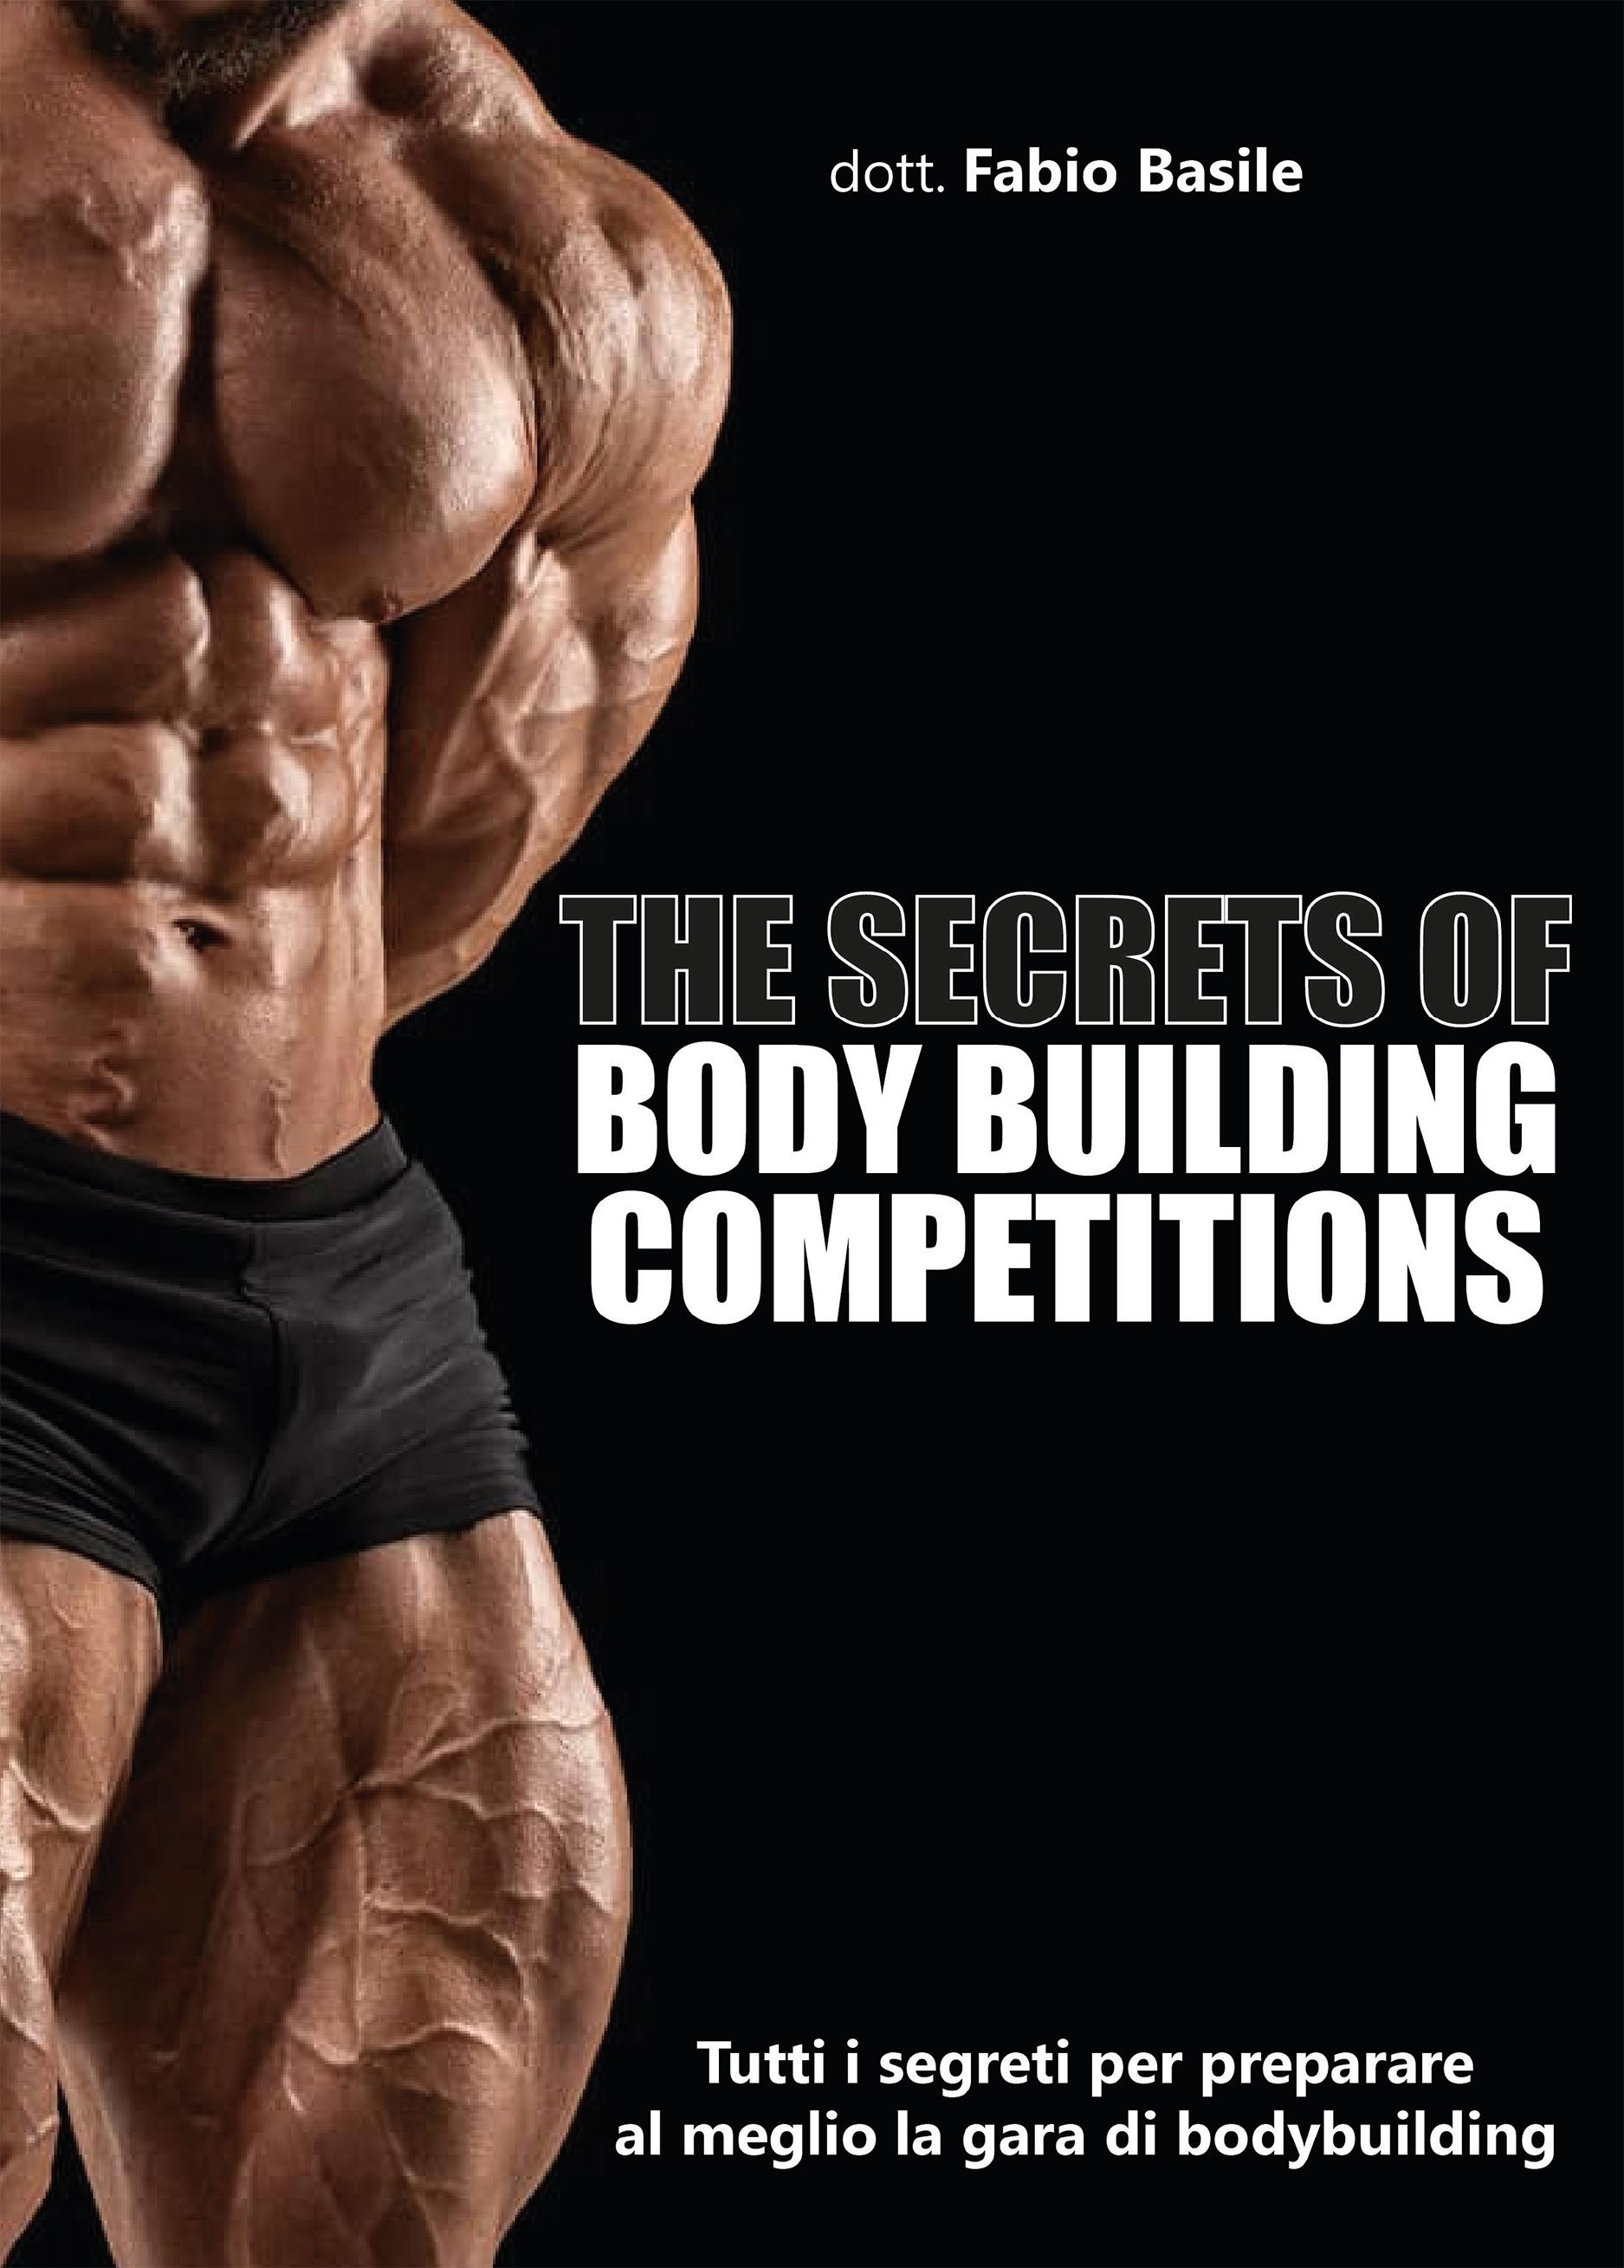 The secrets of body building competitions